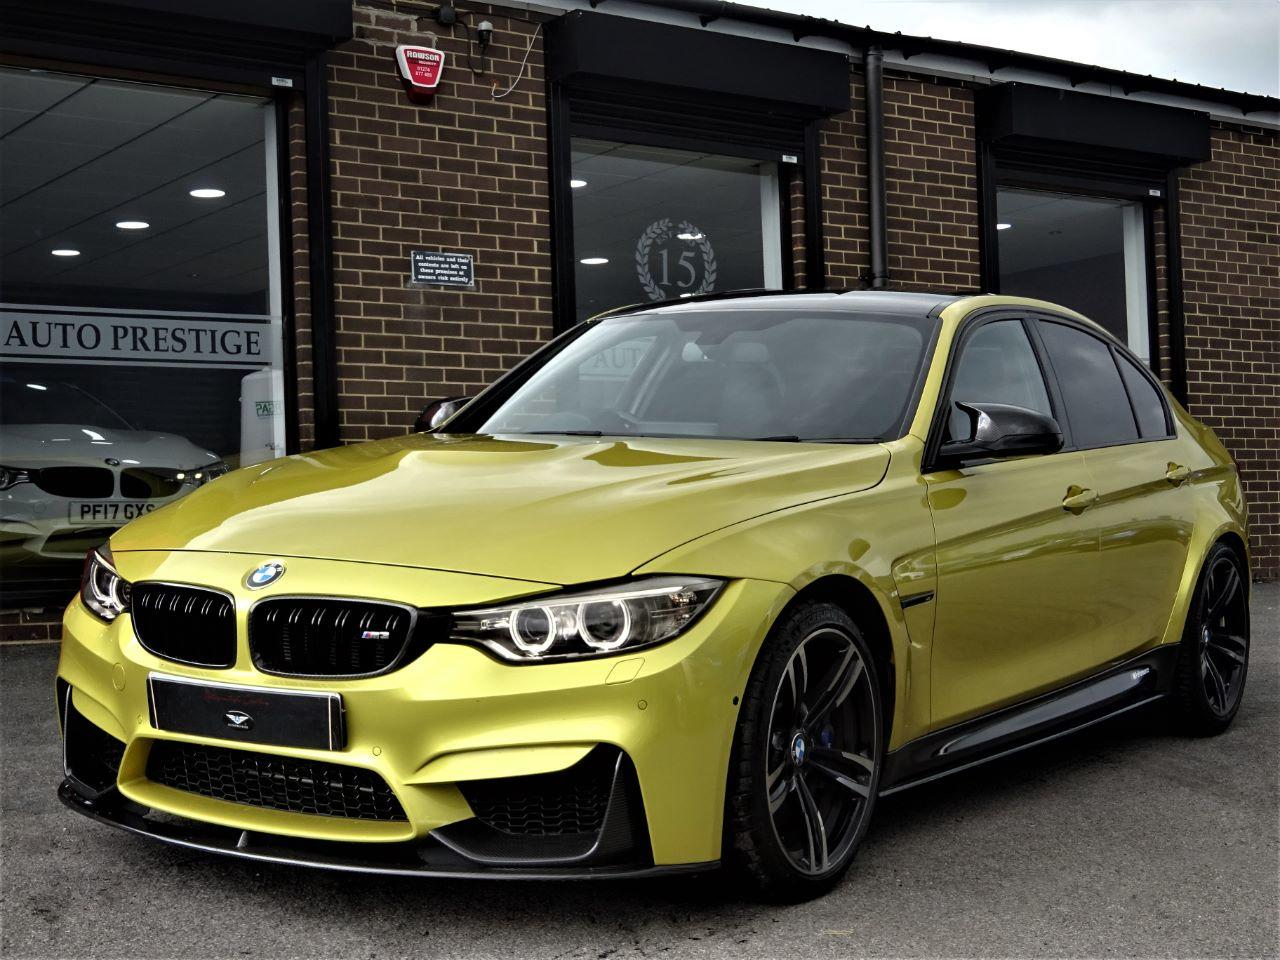 BMW M3 3.0 S-A WITH CARBON PACK RARE AUSTIN YELLOW LOW MILEAGE FBMWSH JUST SERVICED Saloon Petrol Yellow at Autoprestige Bradford